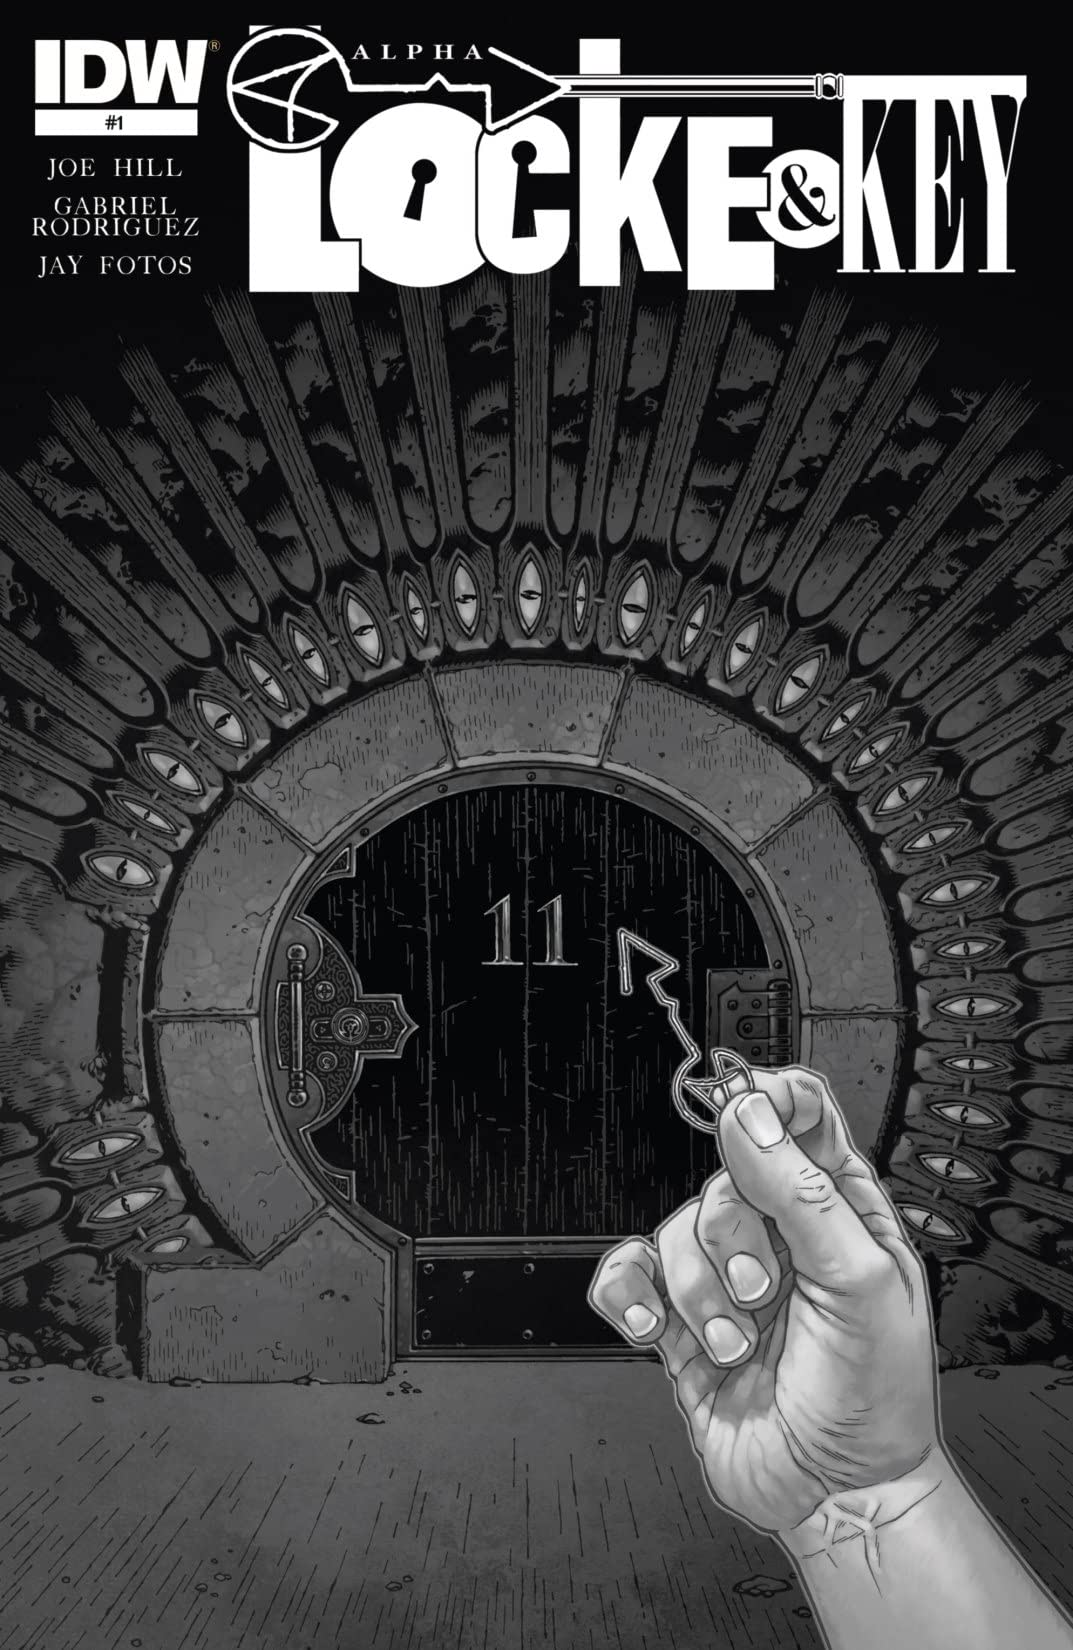 Locke & Key: Alpha - Black and White Exclusive #1 (of 2)